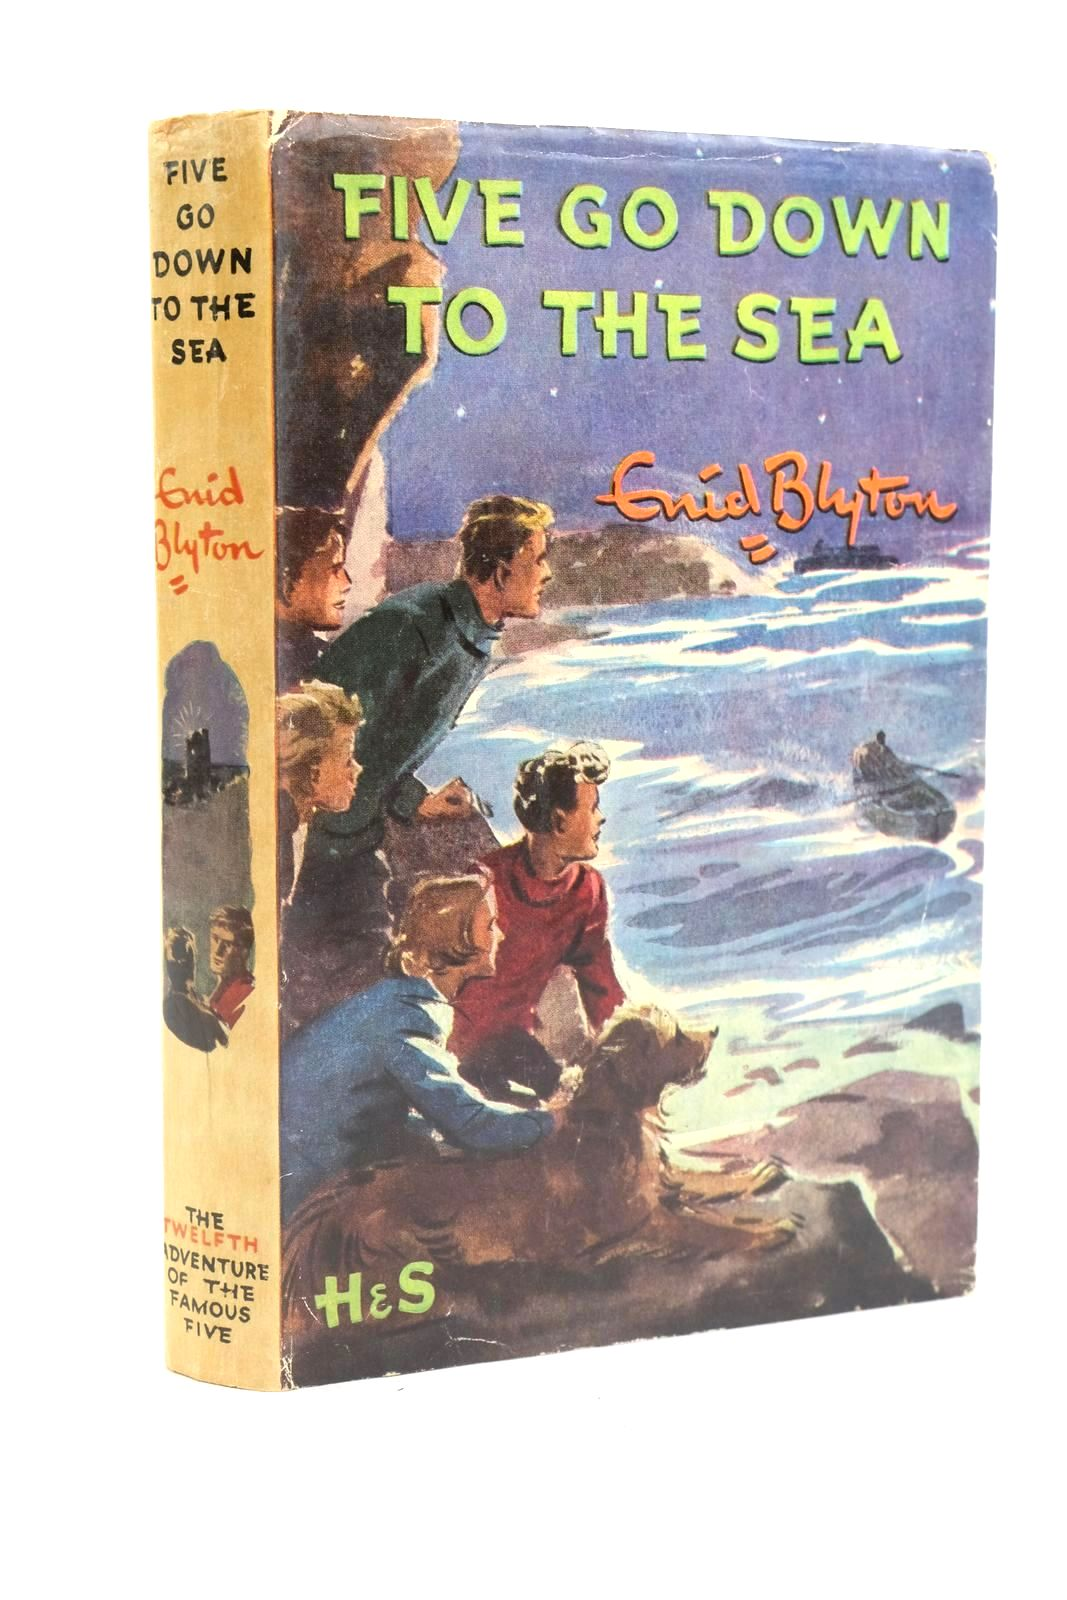 Photo of FIVE GO DOWN TO THE SEA written by Blyton, Enid illustrated by Soper, Eileen published by Hodder & Stoughton (STOCK CODE: 1319945)  for sale by Stella & Rose's Books